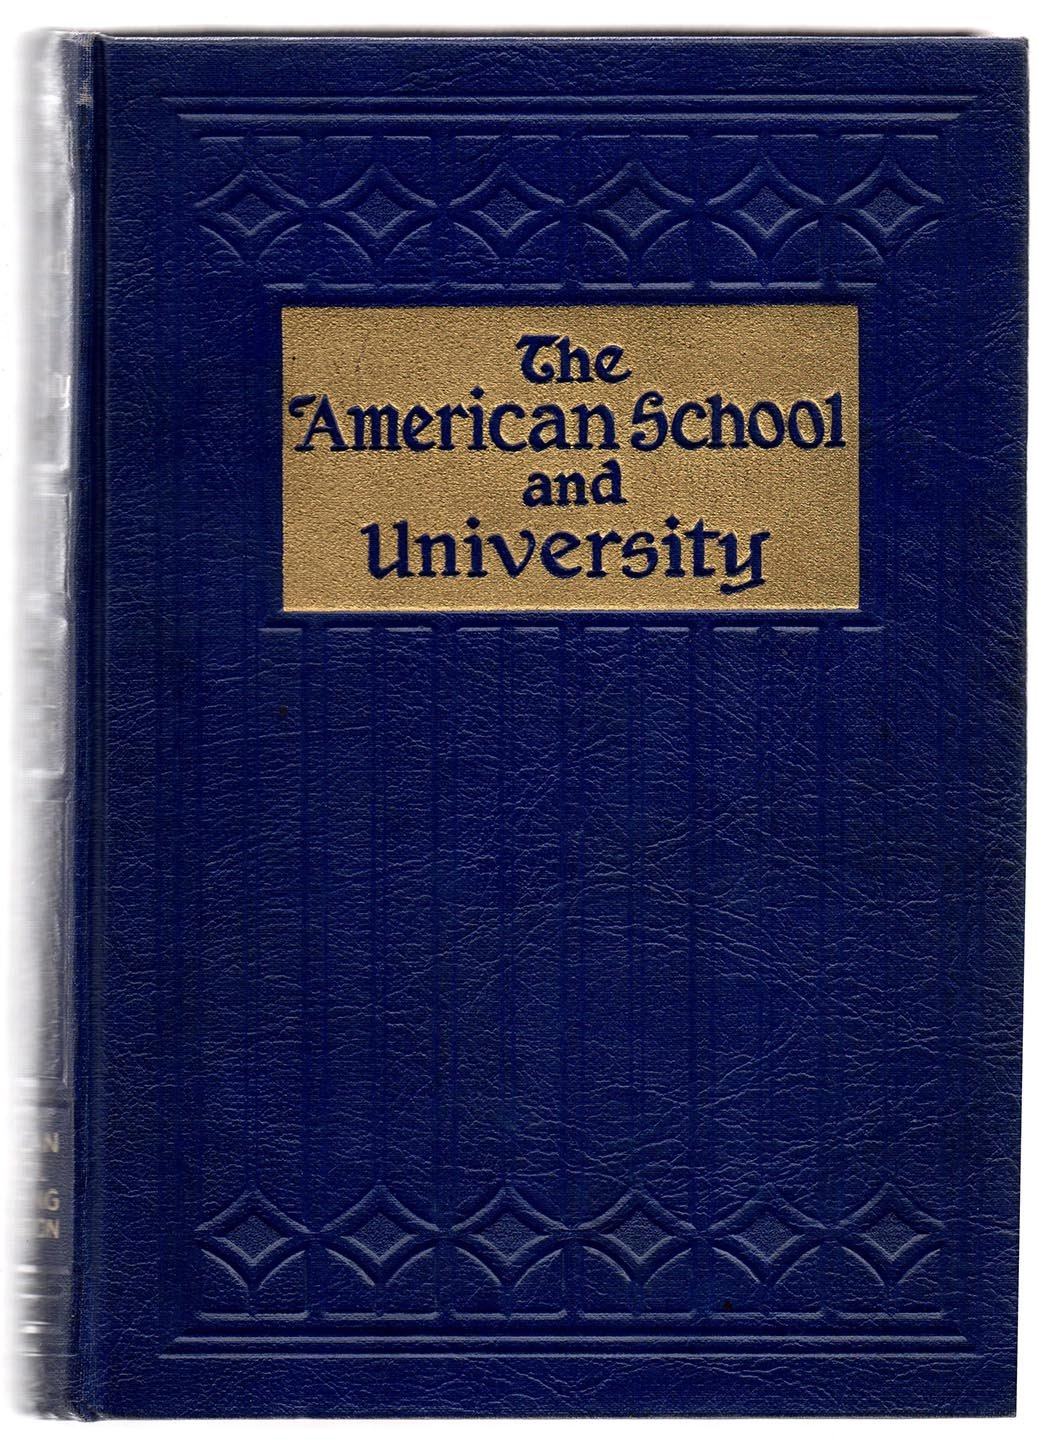 The American School and University: A Yearbook devoted to the Design, Construction, Equipment, Utilization, and Maintenance of Educational Buildings and Grounds 1936